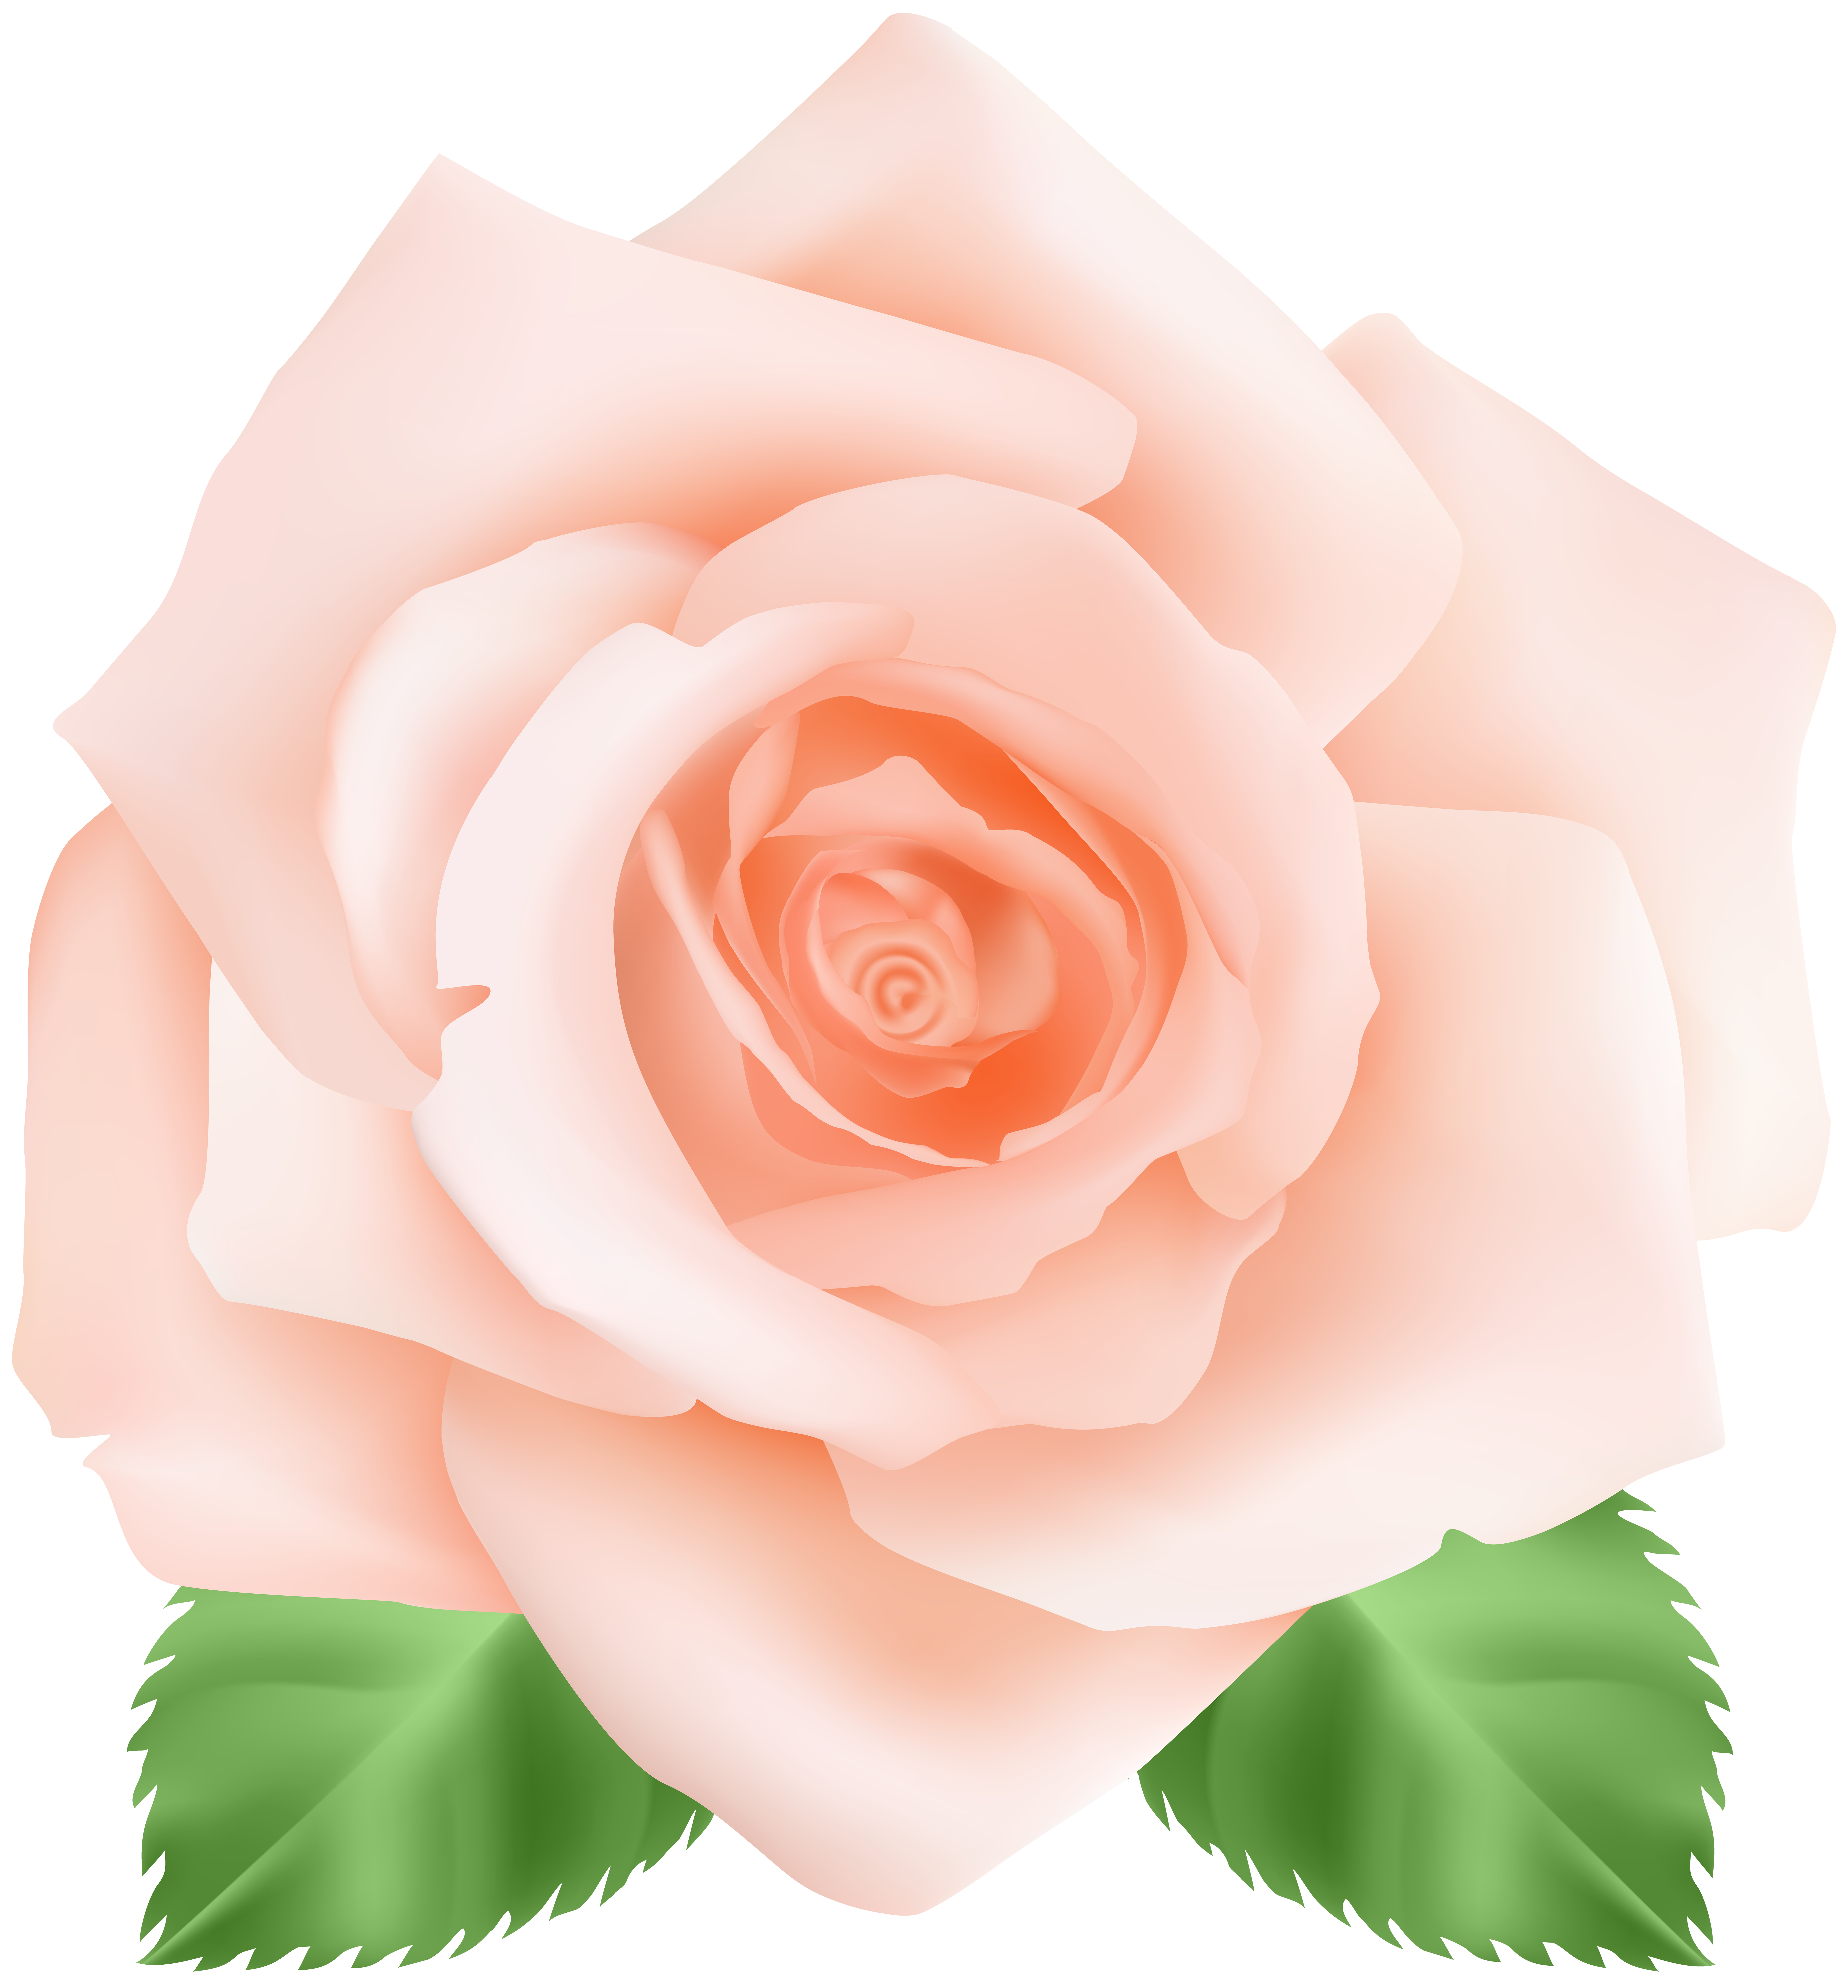 Peach rose png. Clip art image gallery